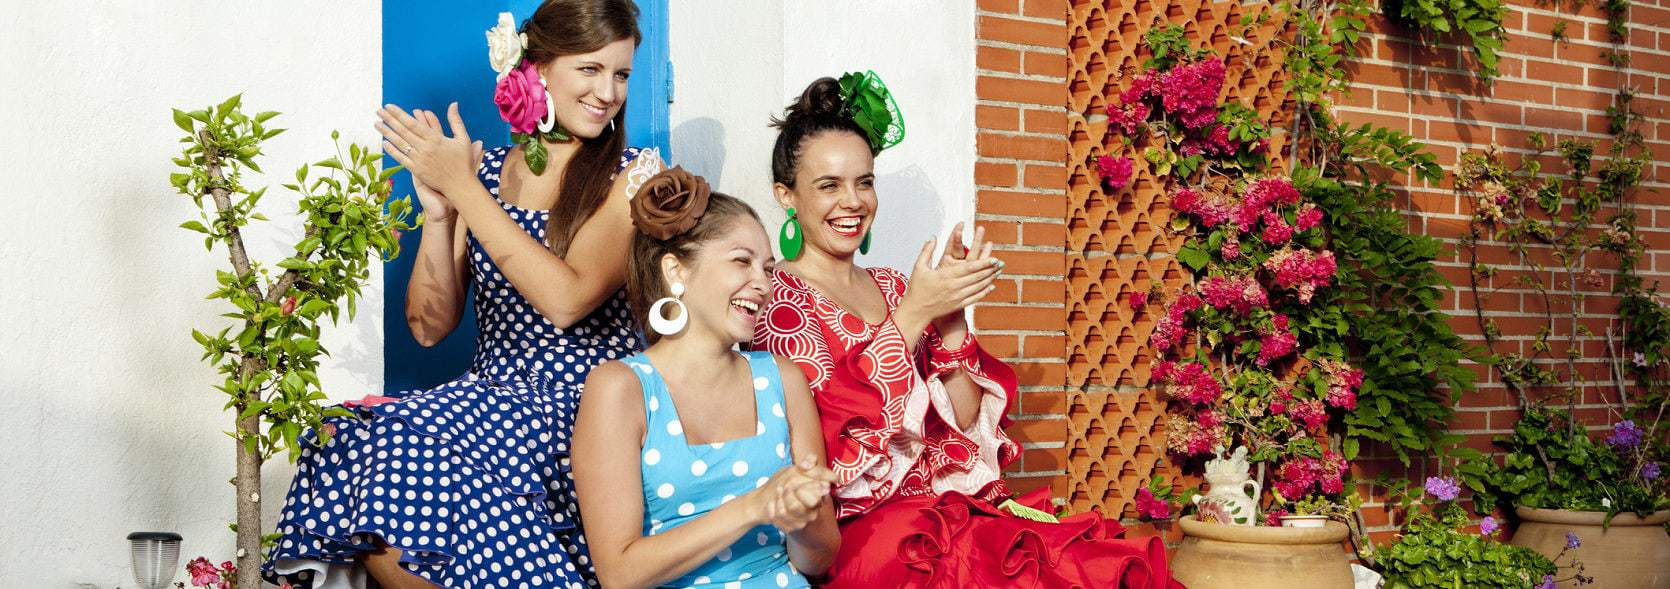 flamenco girls